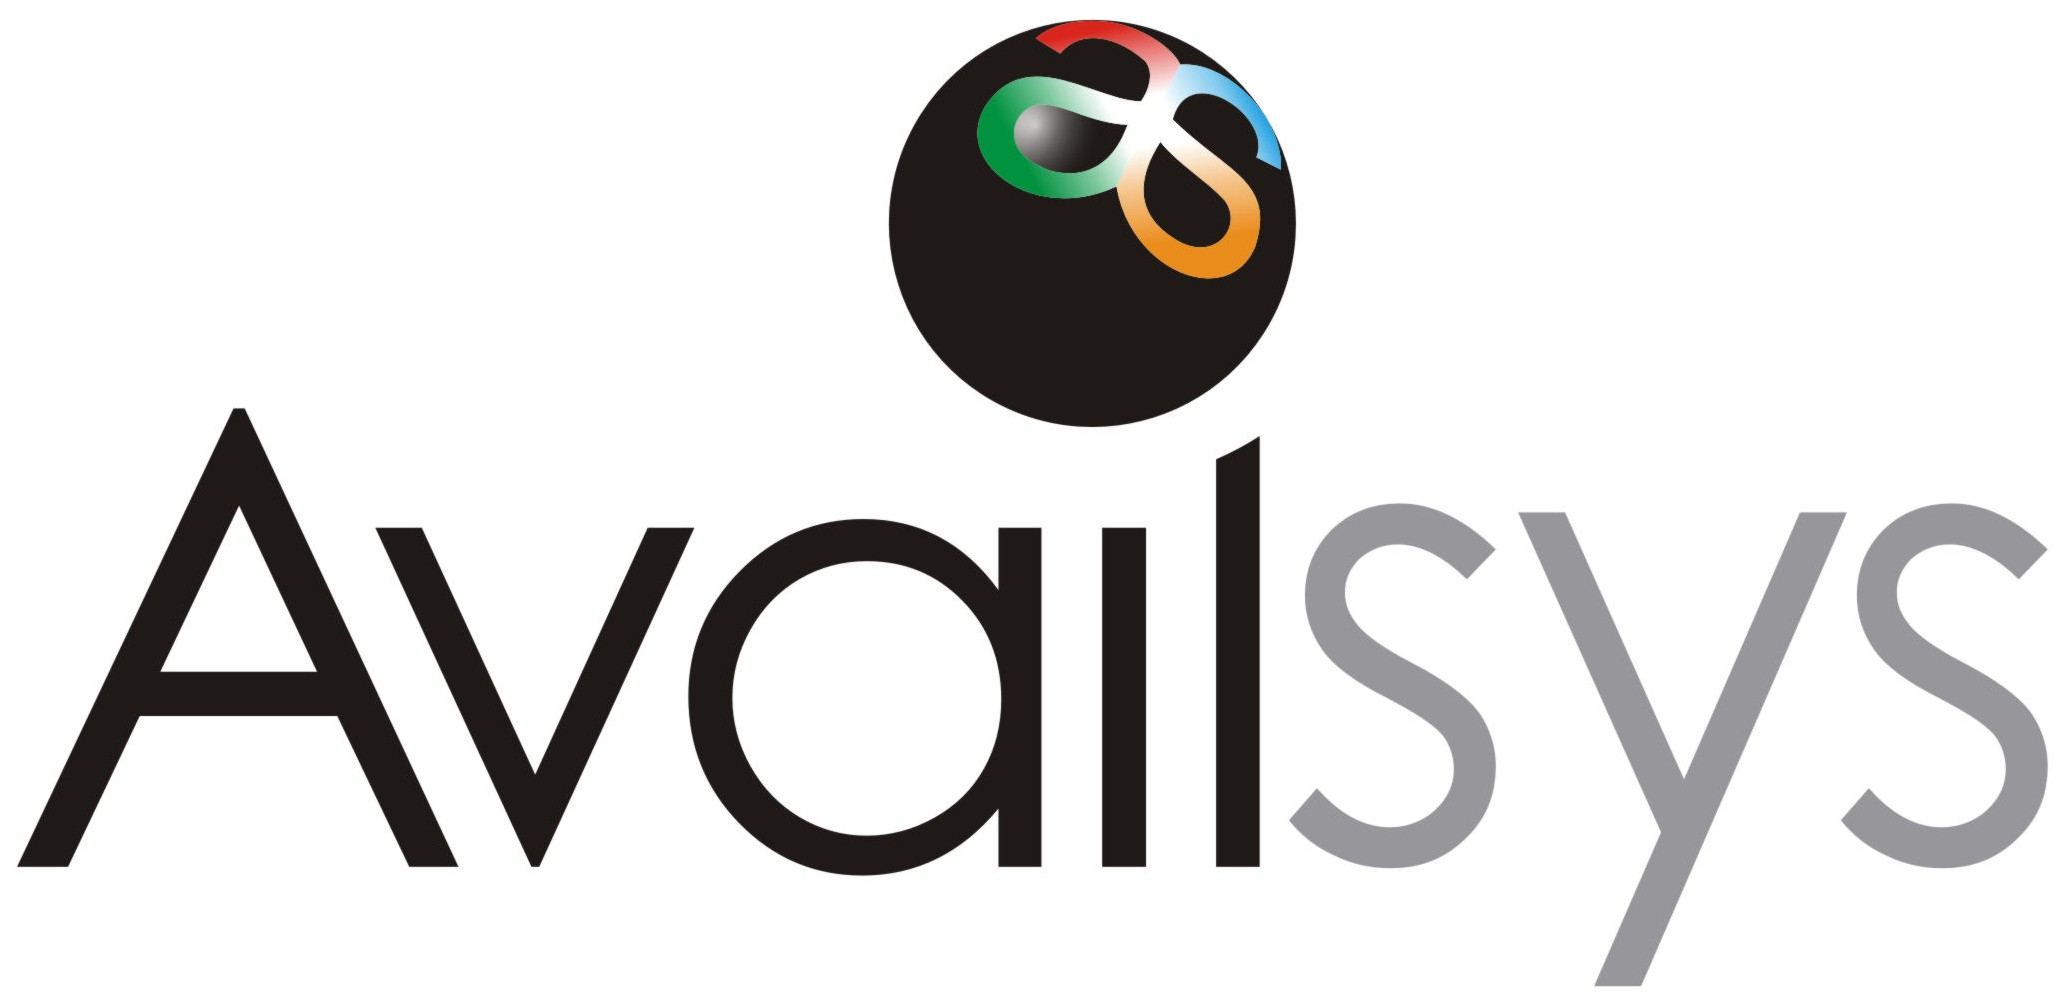 Availsys Ltd